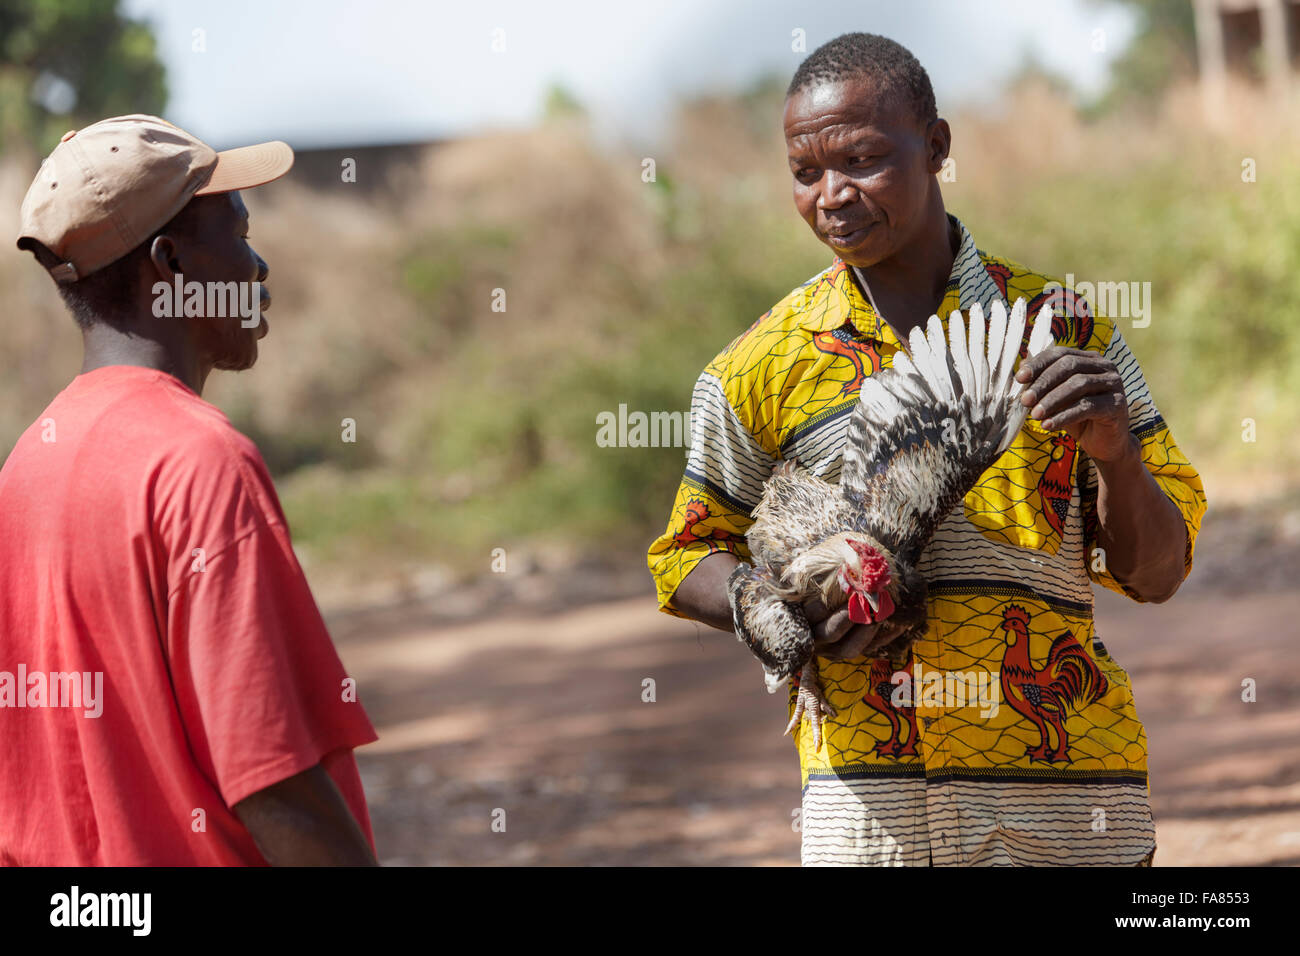 A vendor sells chickens at the poultry market in Banfora, Burkina Faso. - Stock Image